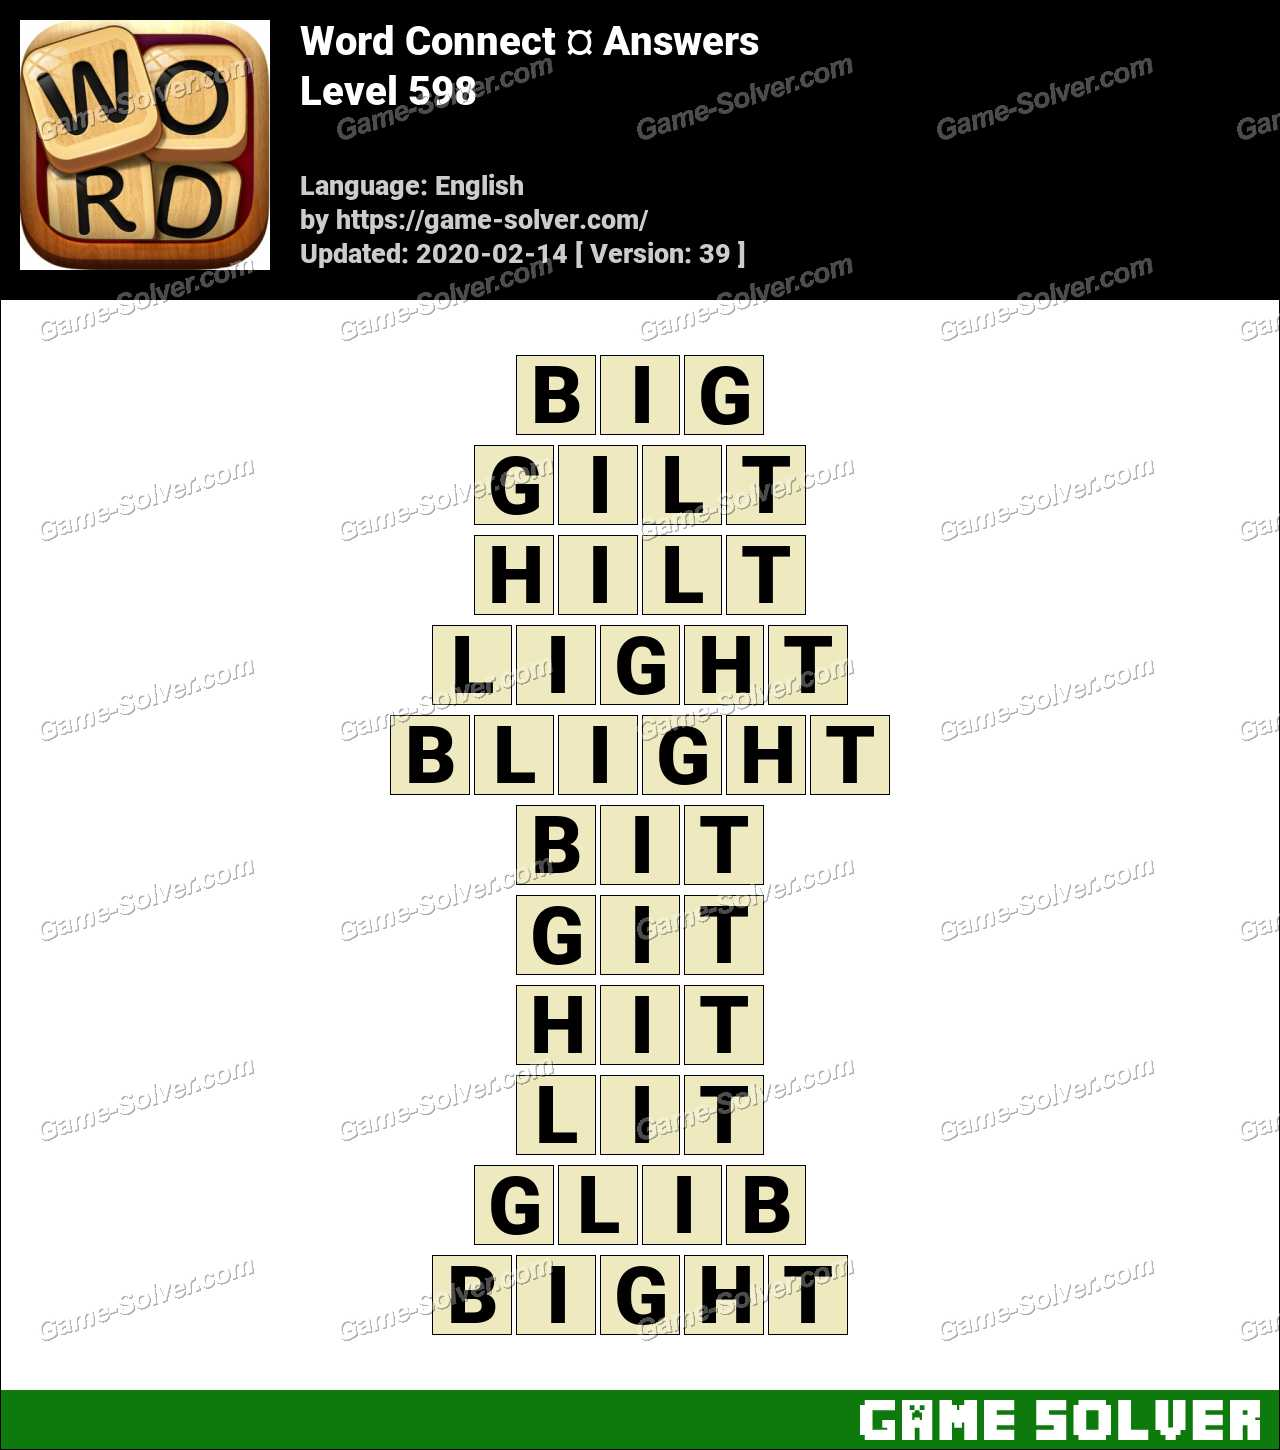 Word Connect Level 598 Answers